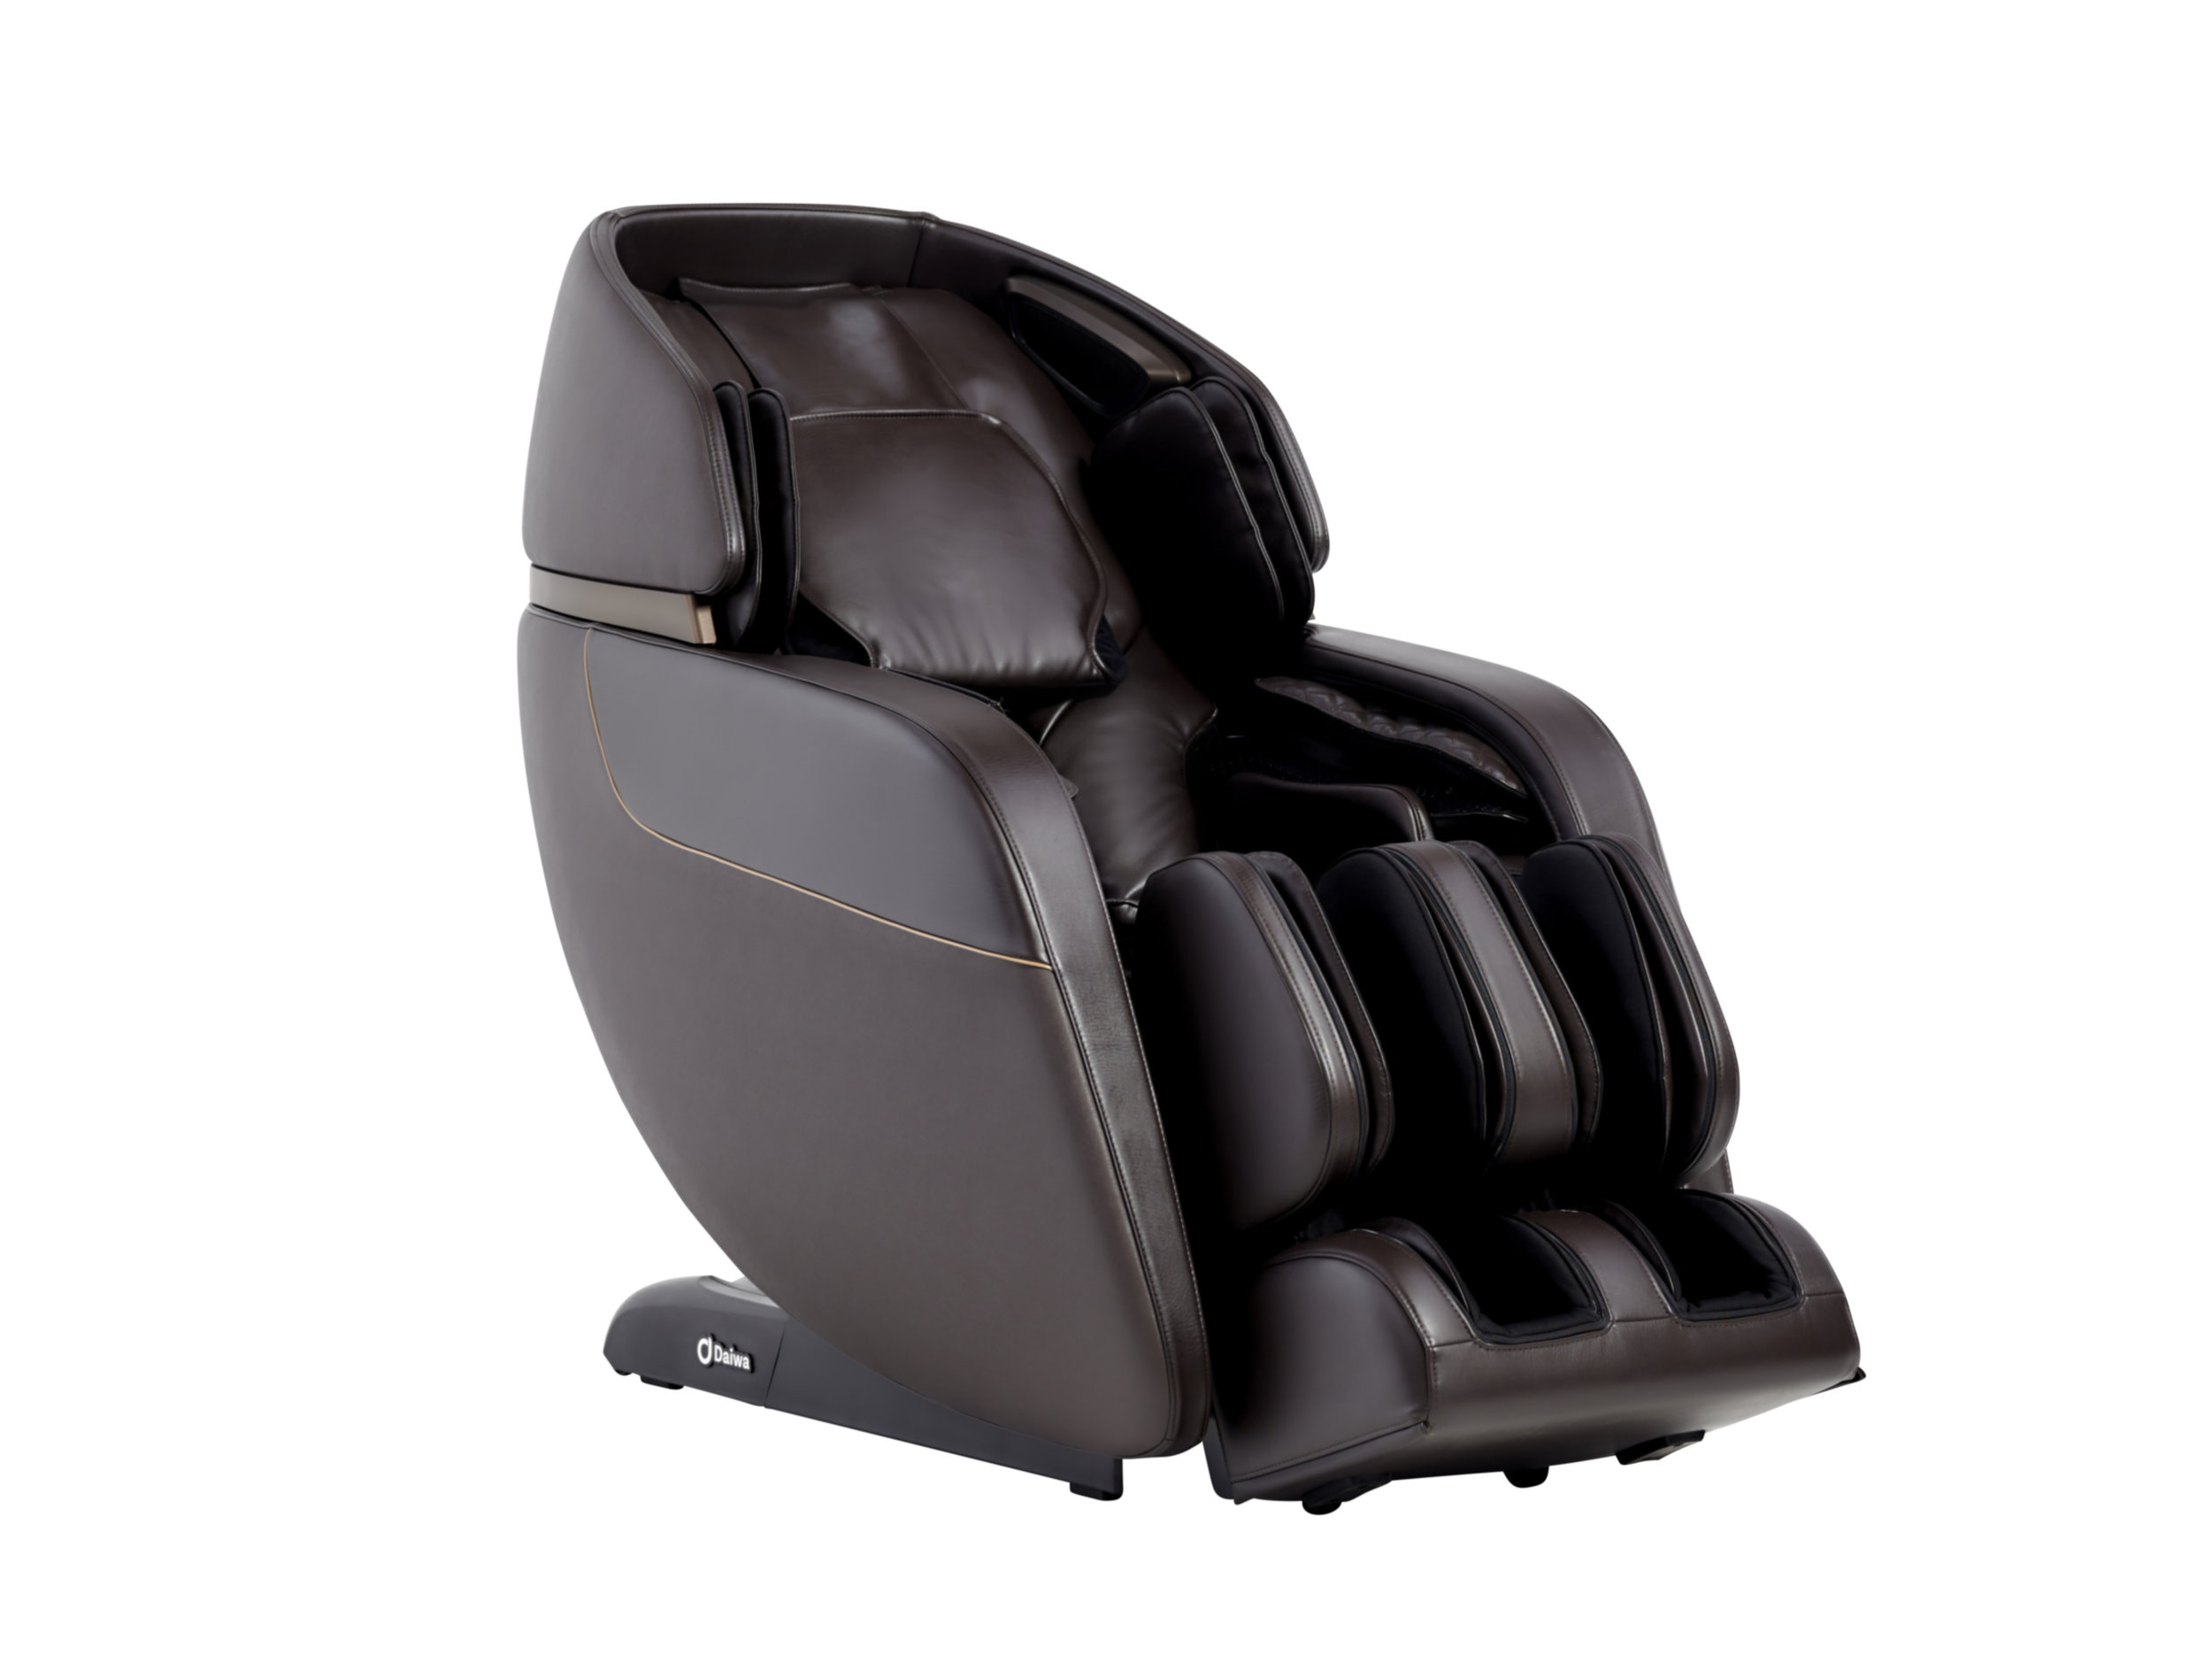 2019_0520_Daiwa_MassageChairs0302 copy.jpg